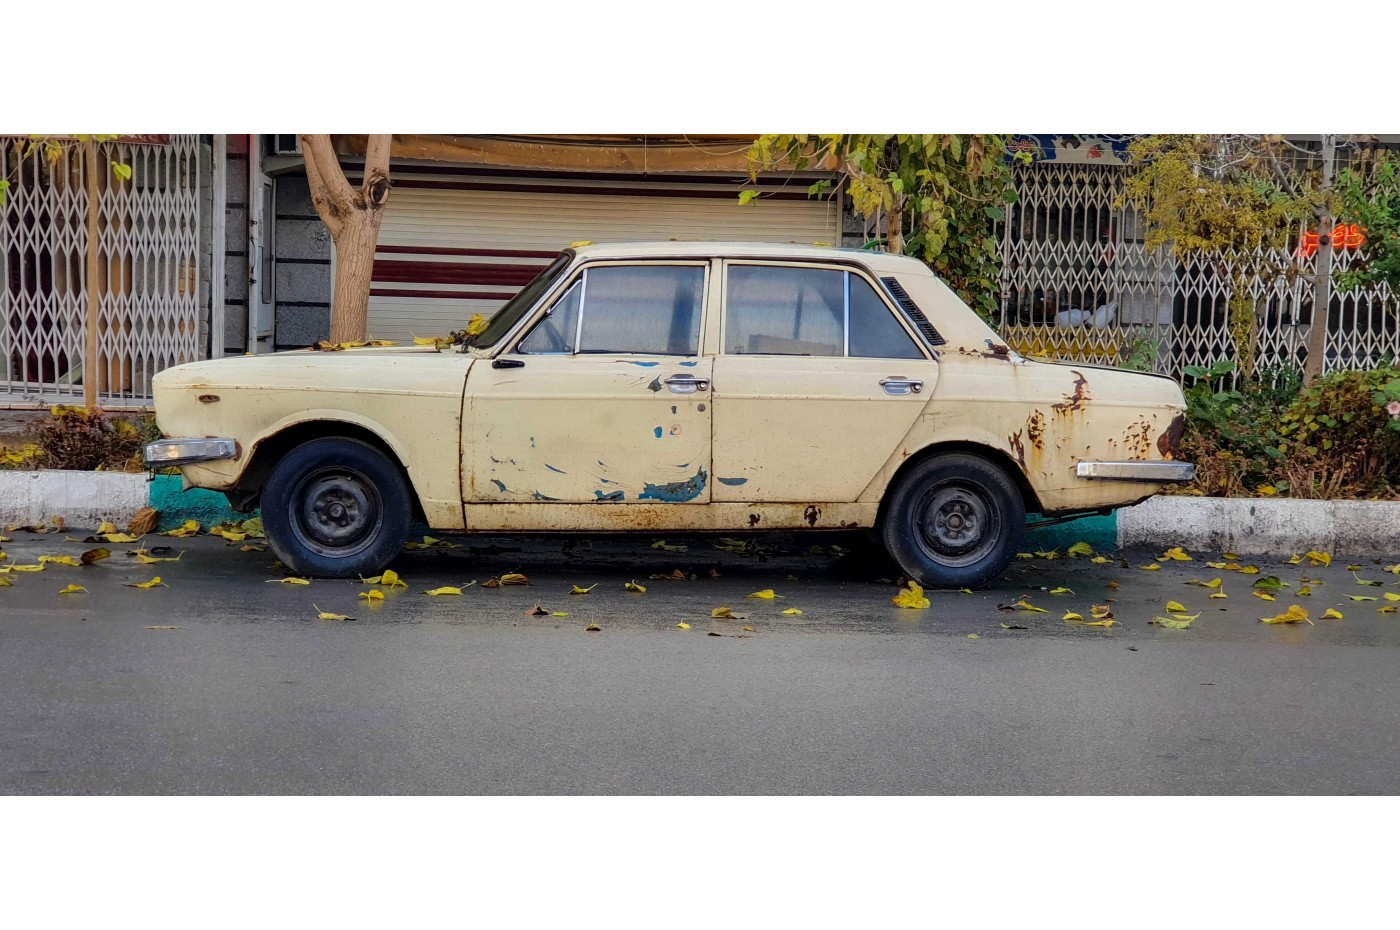 Old used car parked on a street.